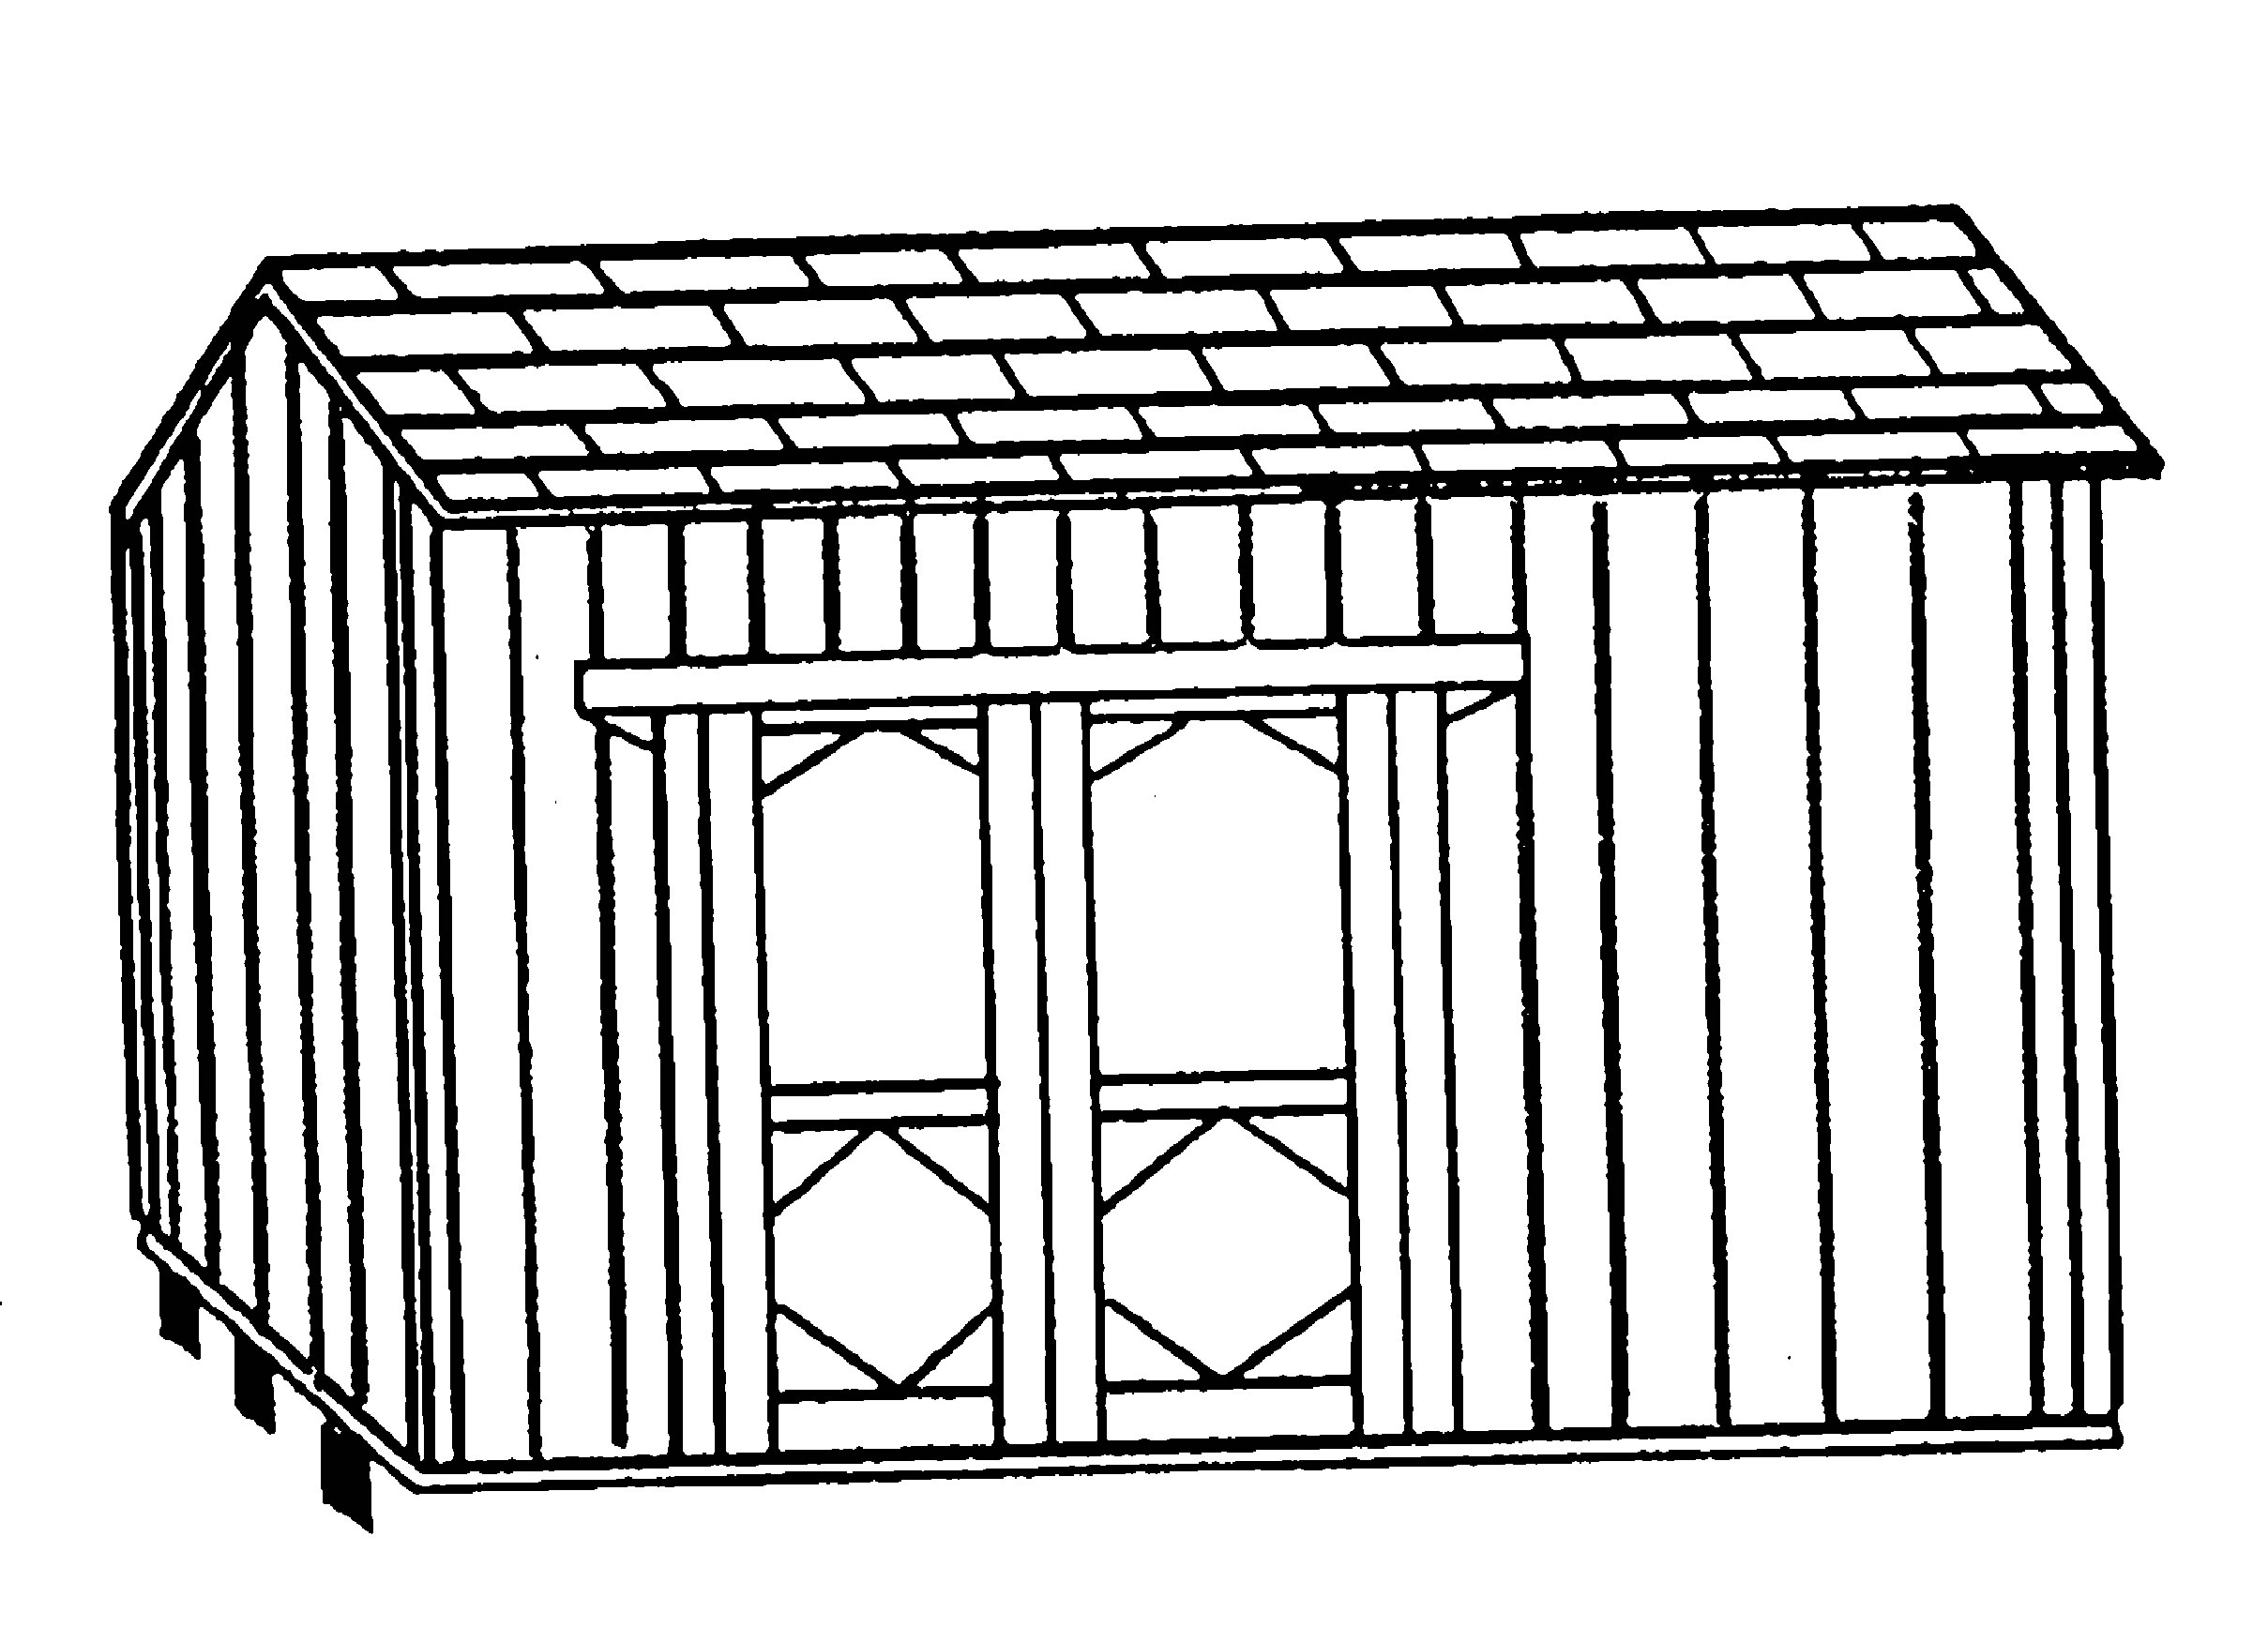 2418x1735 Premade Storage Sheds Drawing Plans For Storage Shed